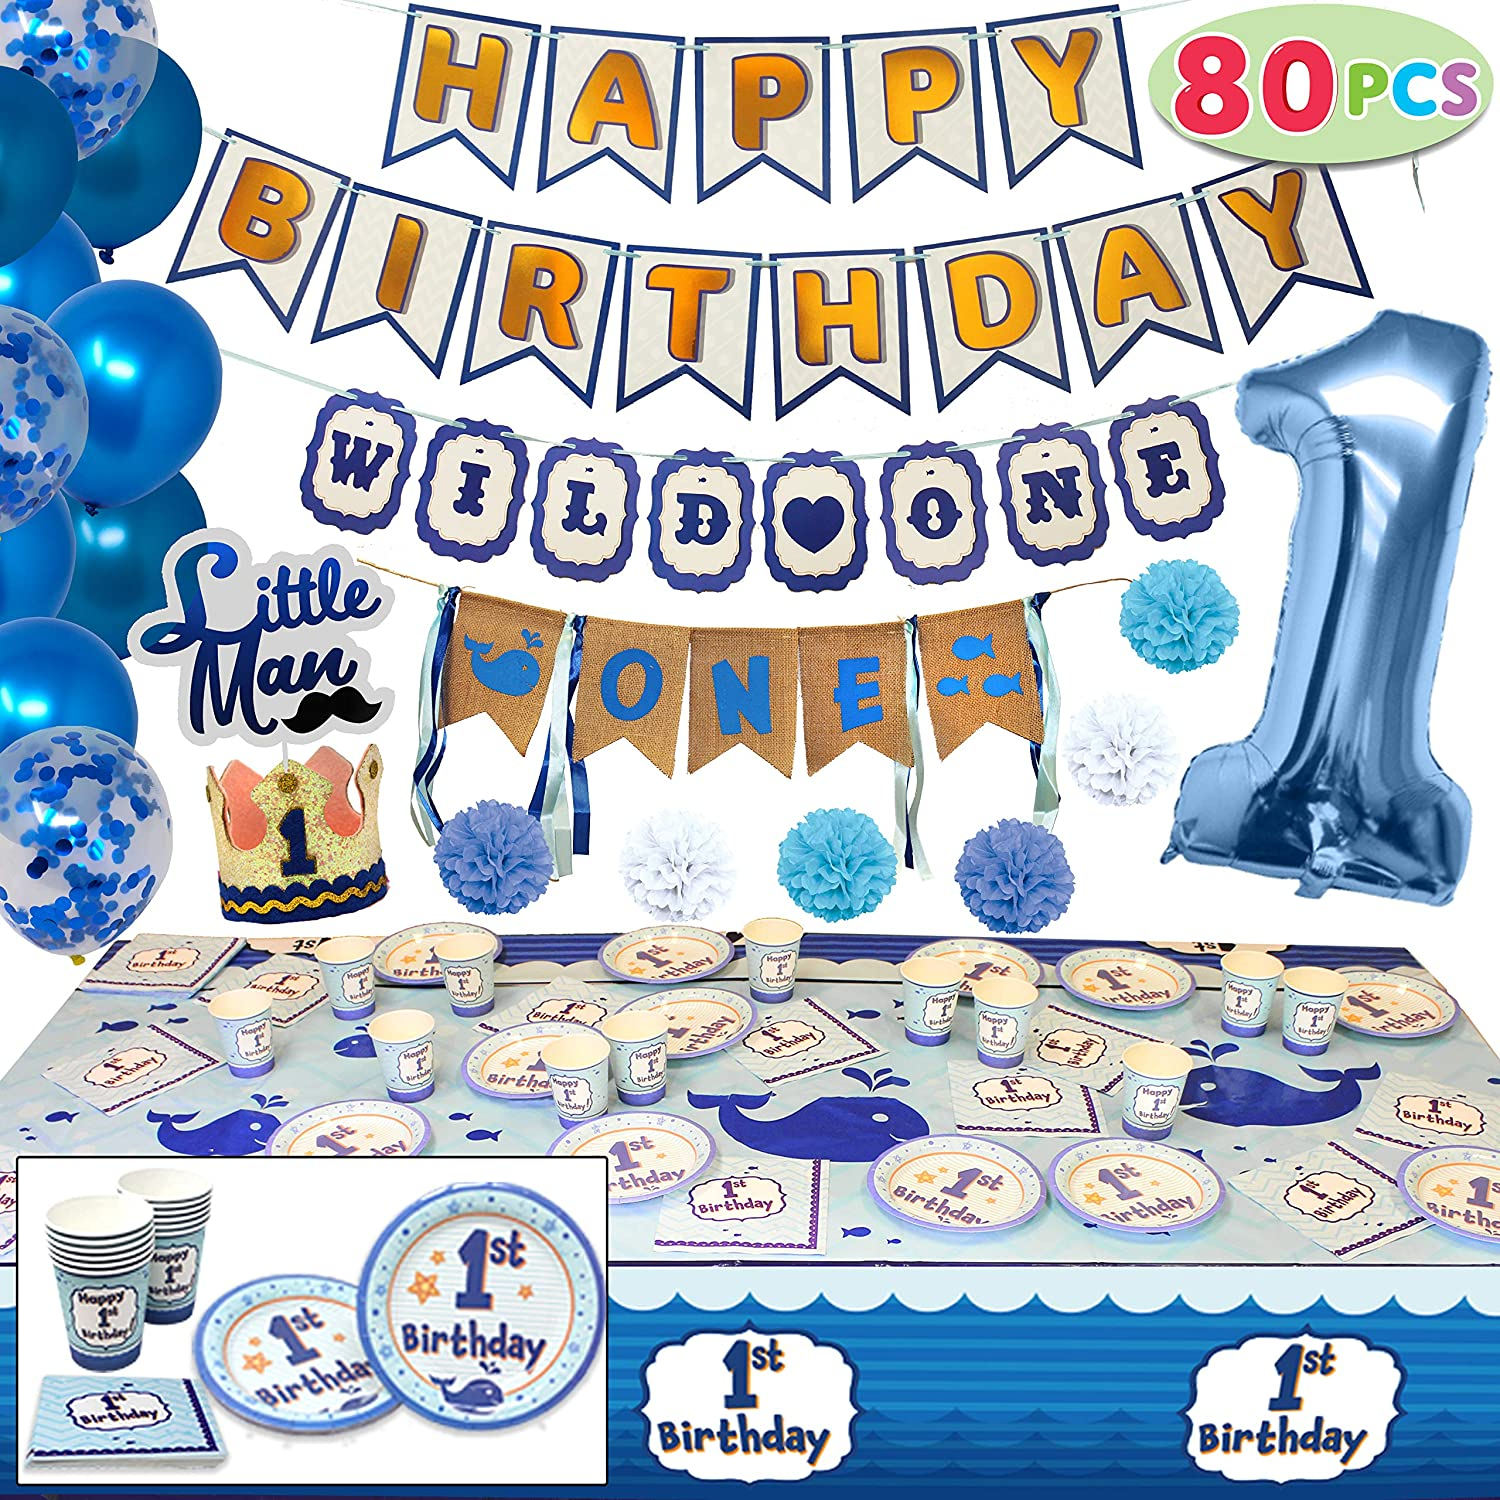 JOYIN 80 PCs Baby Boy 1st Happy Birthday Decorations Party Supplies All-in-One Wild Pack (High Chair Bday Banner, Confetti Balloons, Hats, Cake Topper, Plates, Cups, Tableware) Ideal for Kids One Year Old First Parties.